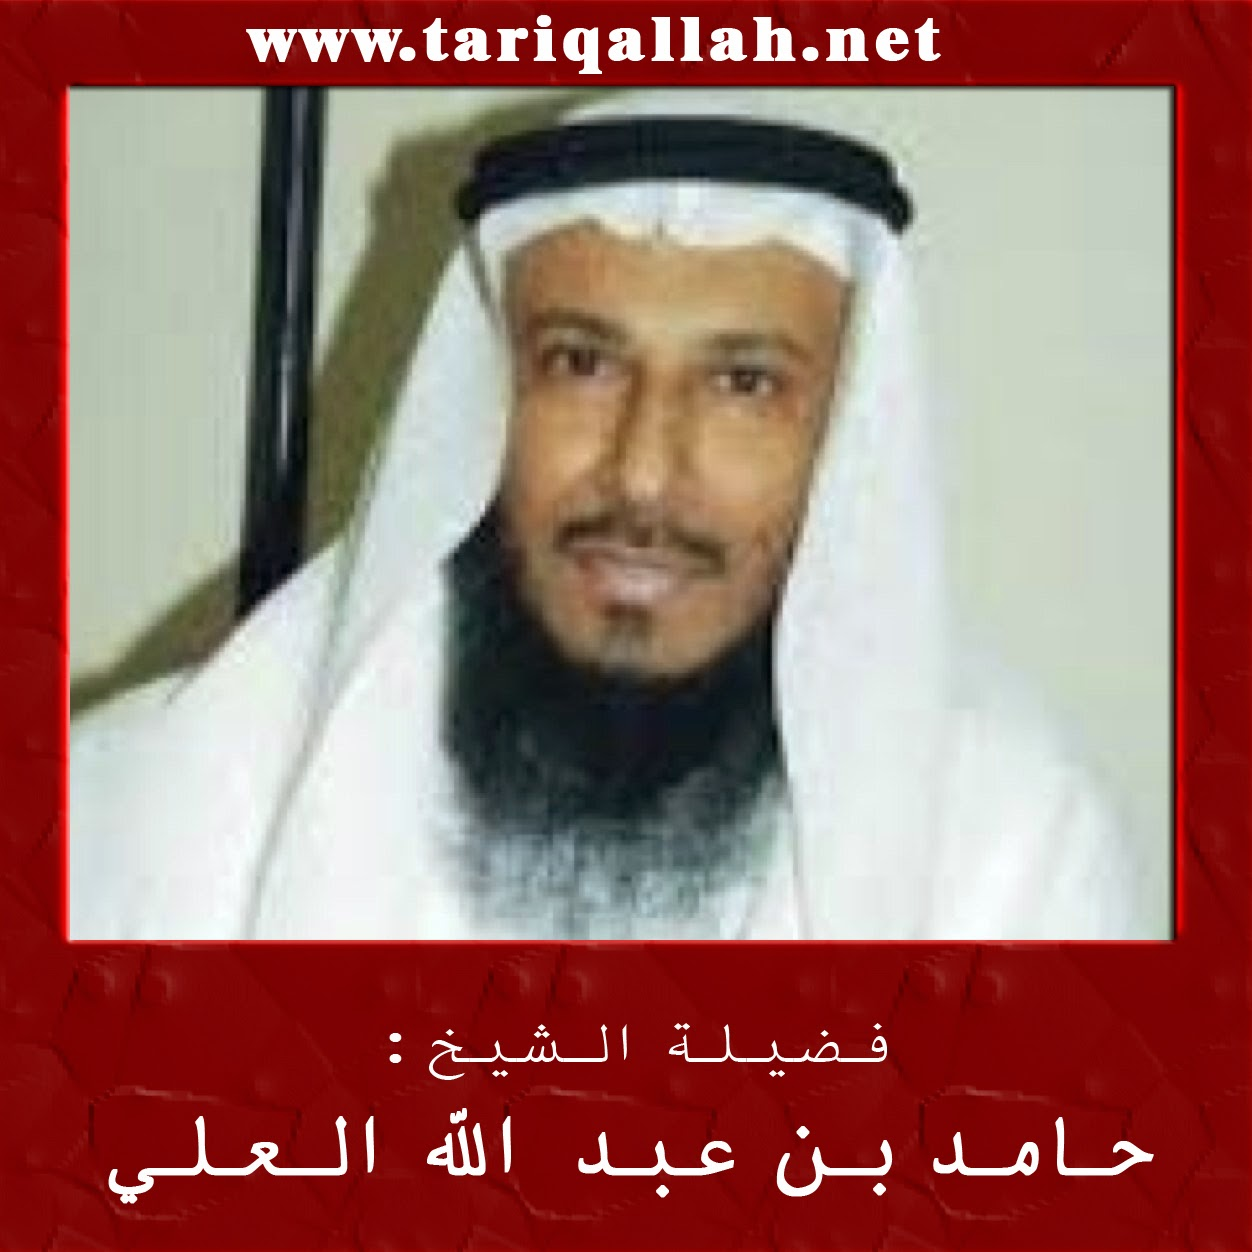 http://www.tariqallah.net/2014/07/blog-post_6.html